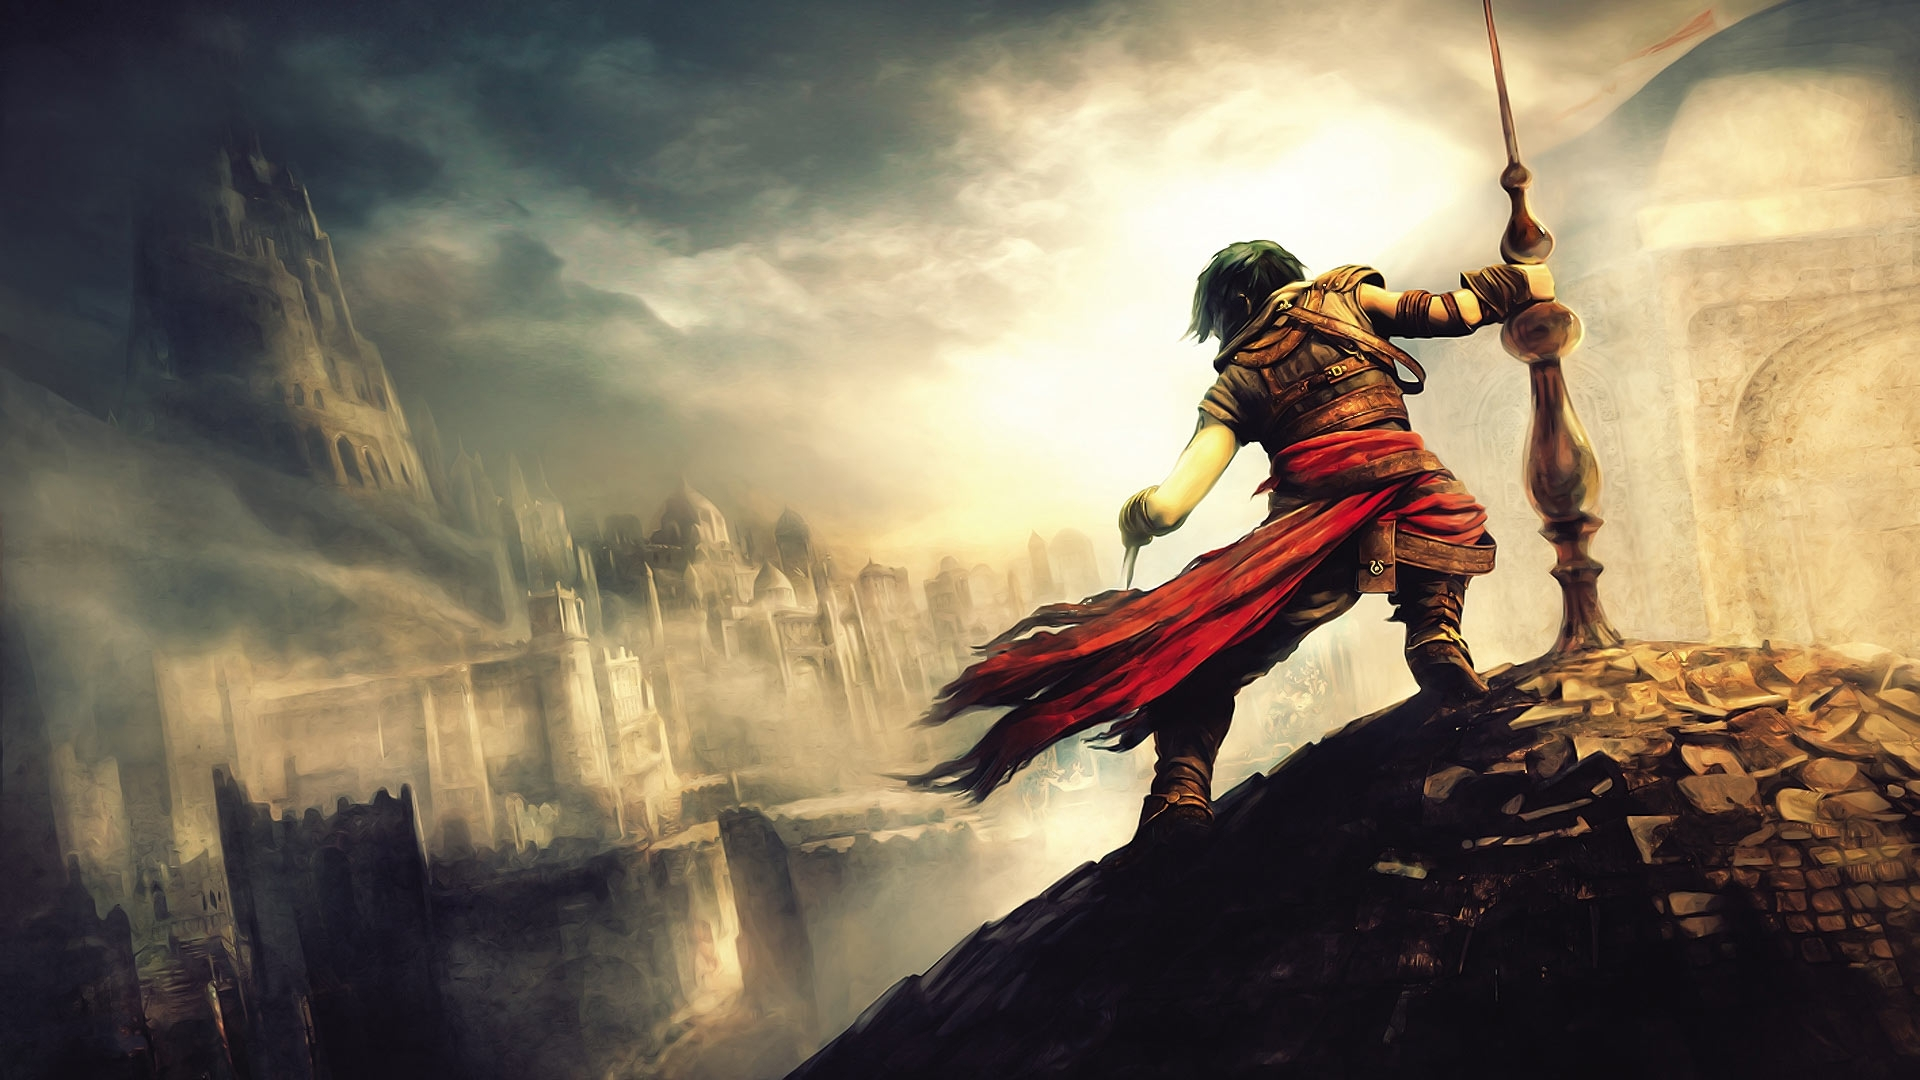 prince of persia: the forgotten sands full hd fond d'écran and